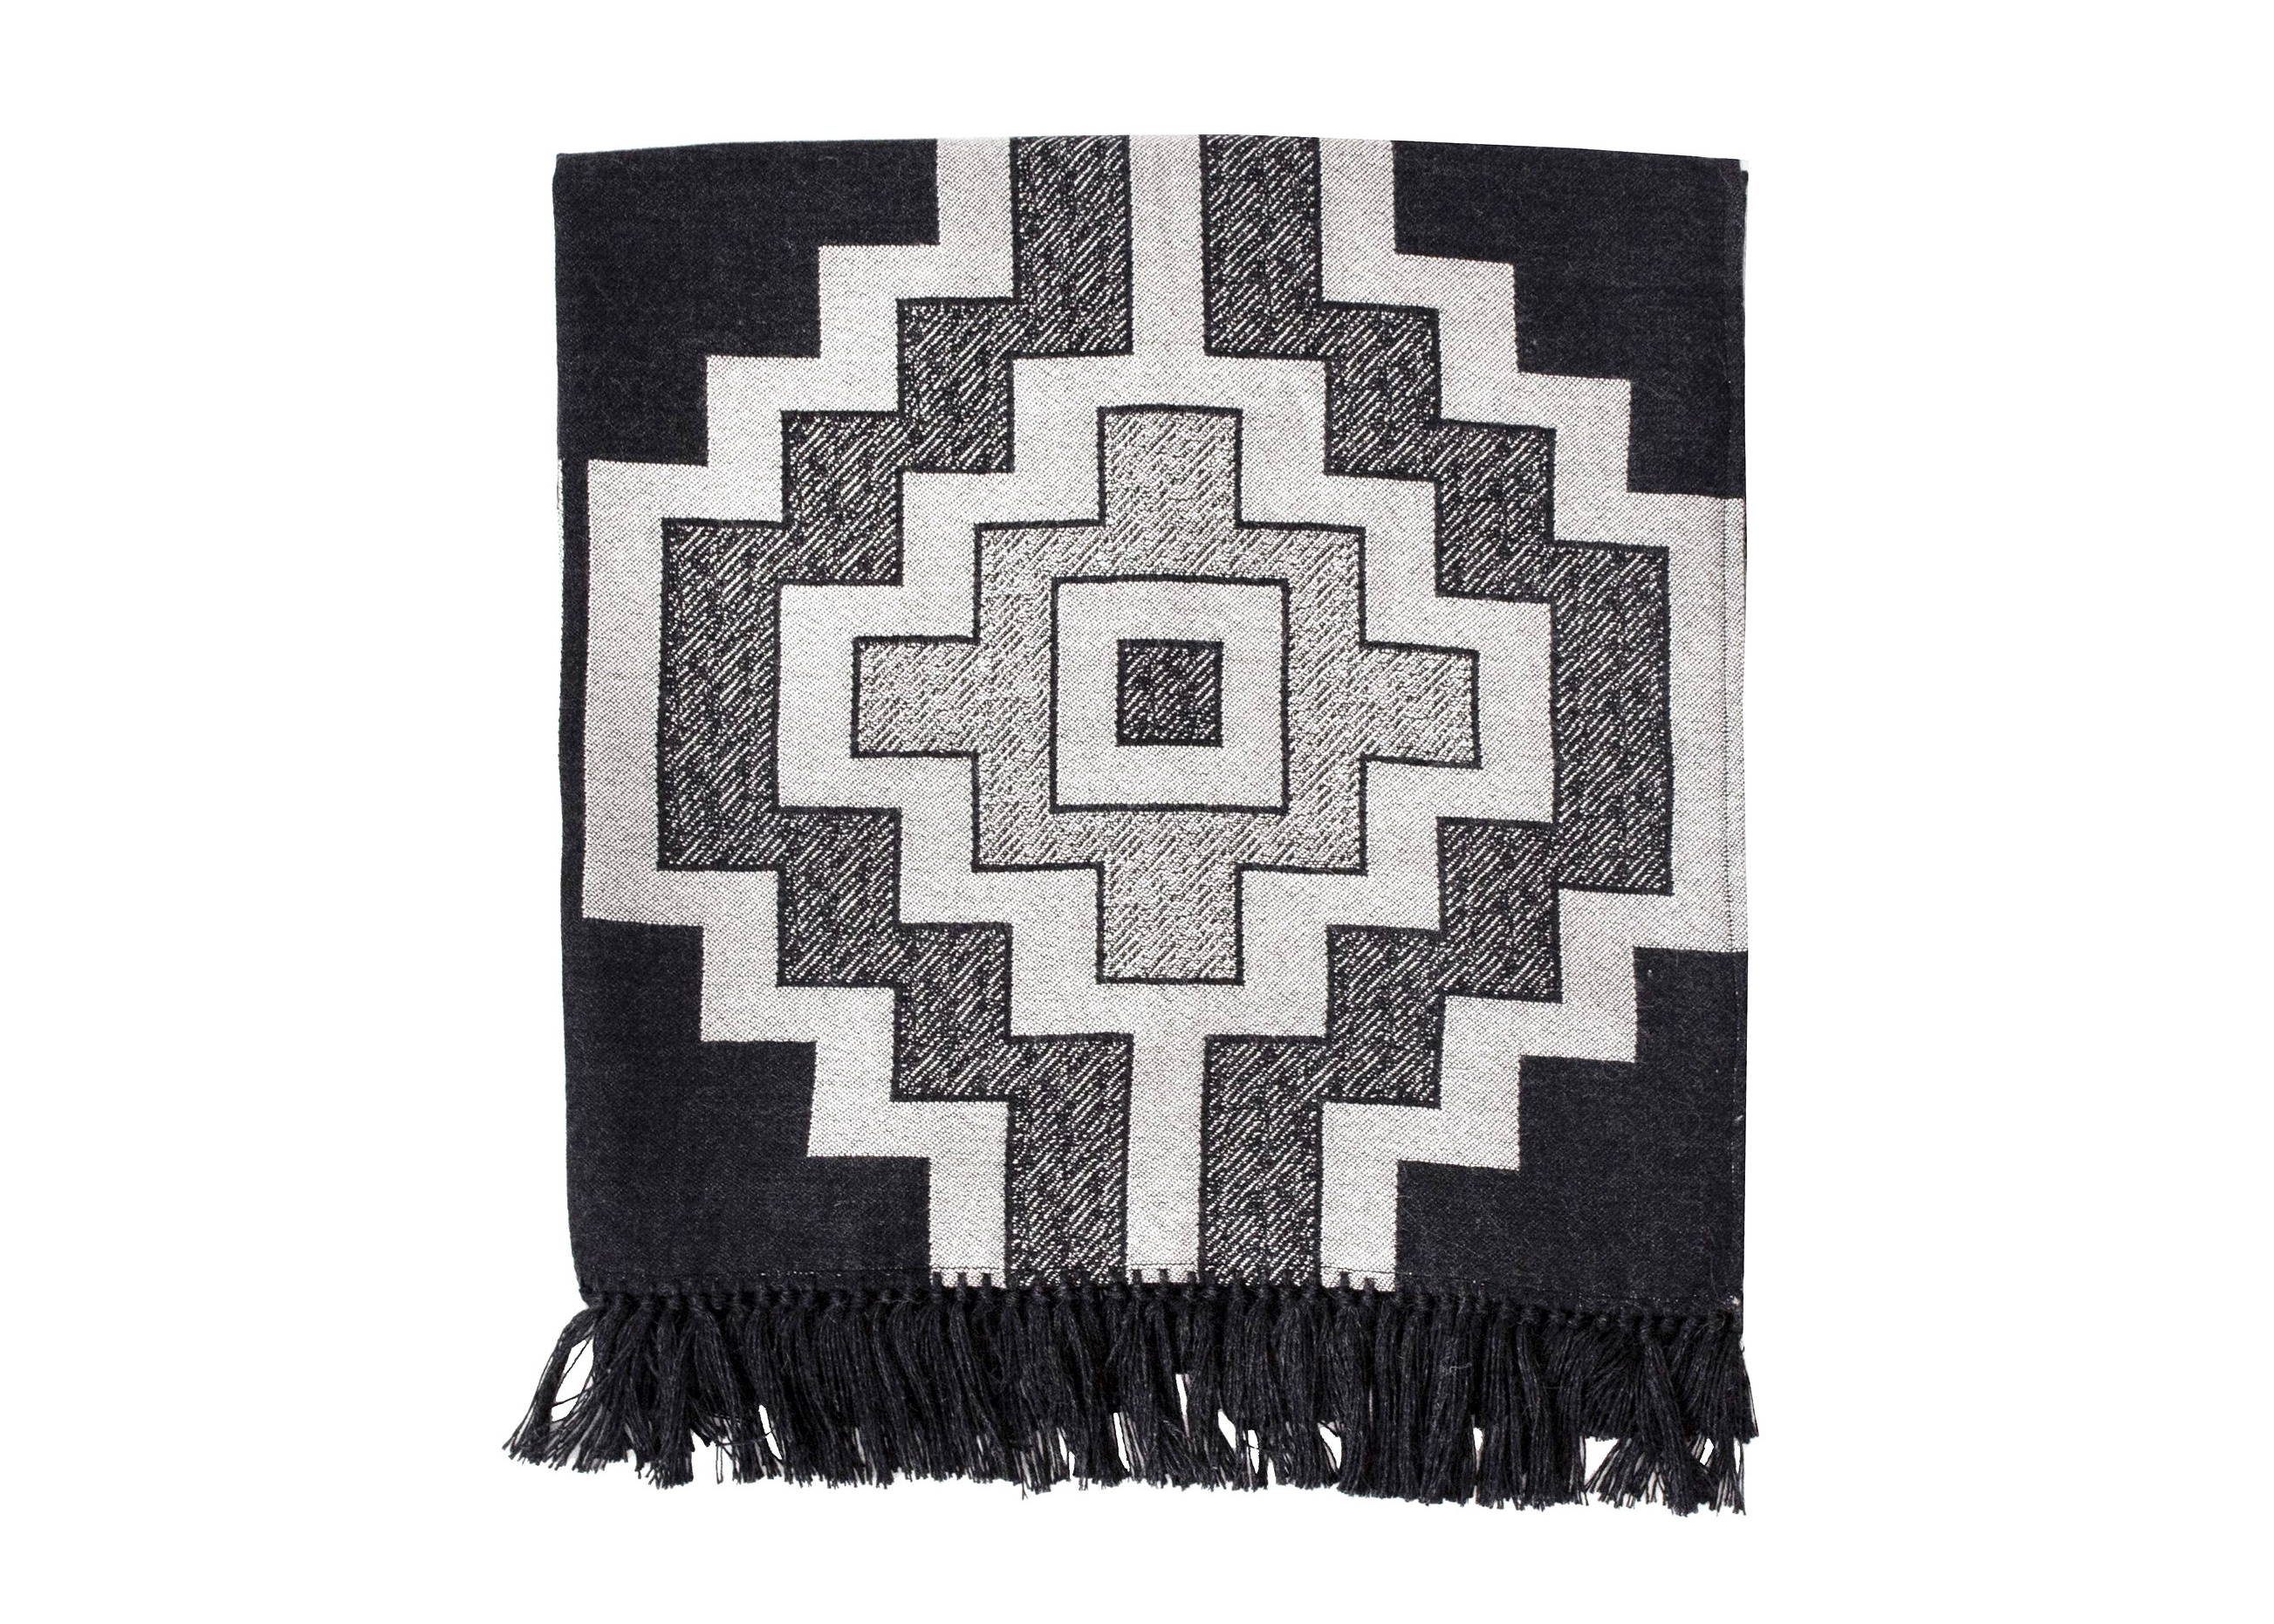 Alpaca Pampa Motif Throw Blanket in Charcoal - Stick & Ball